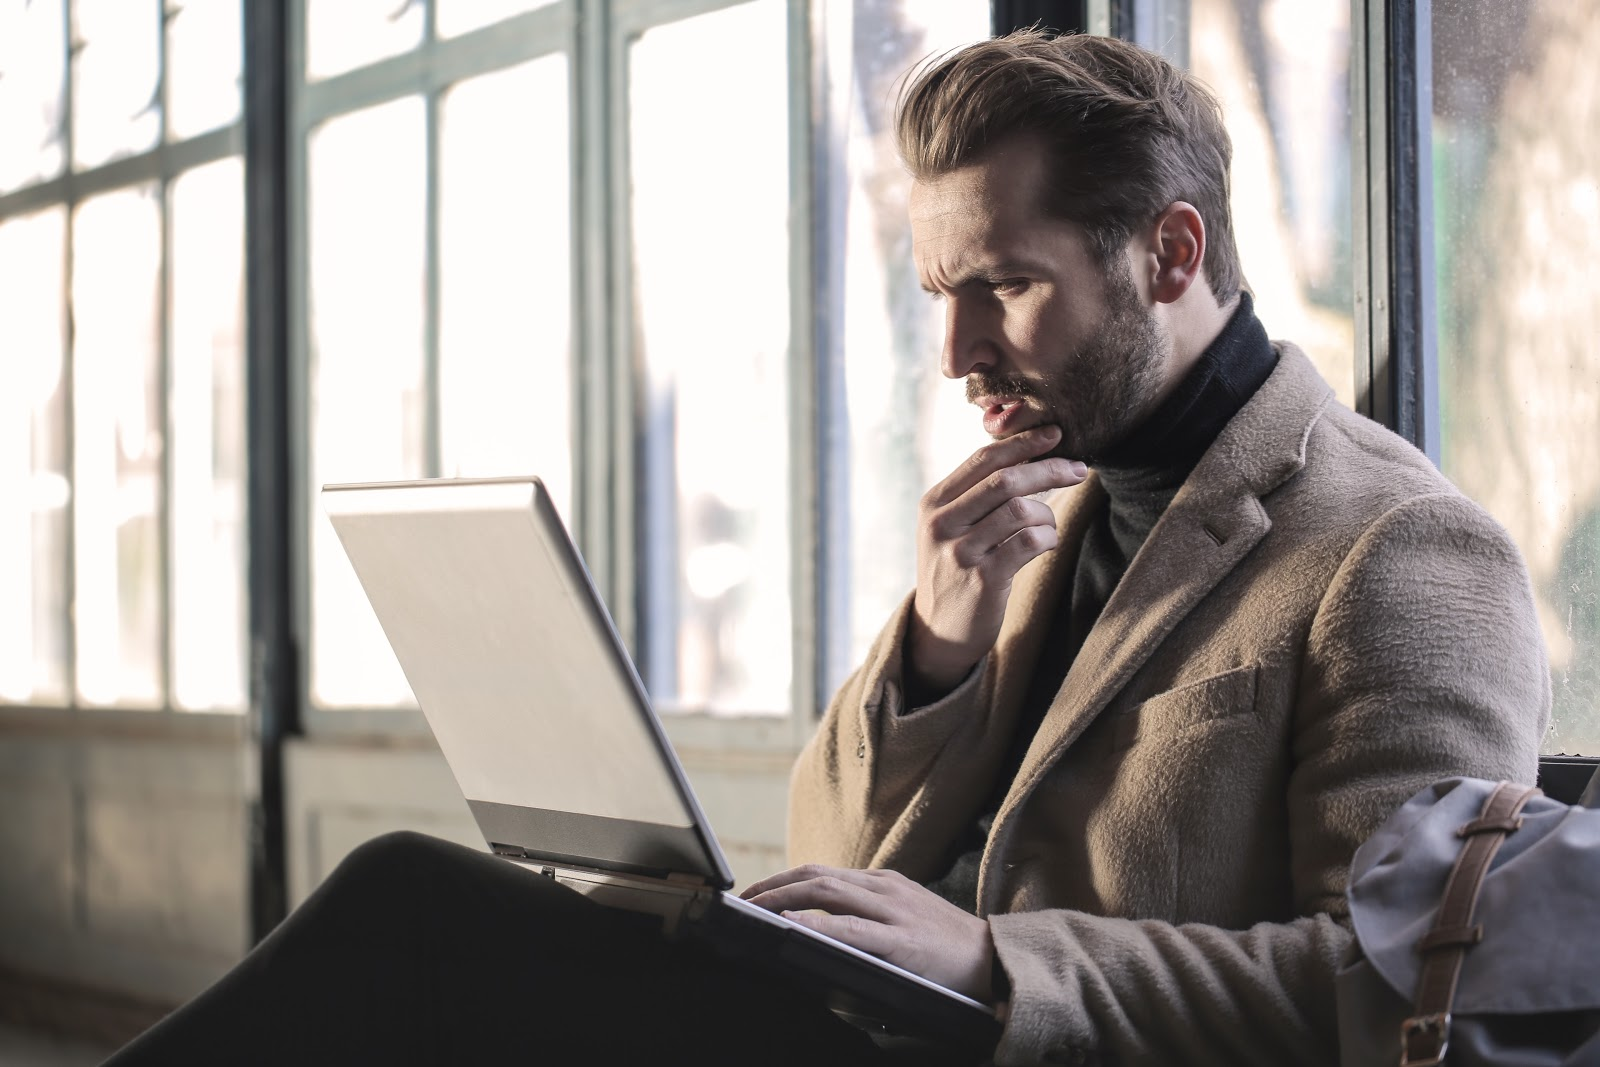 A man scratching his chin and looking at a laptop in confusion.